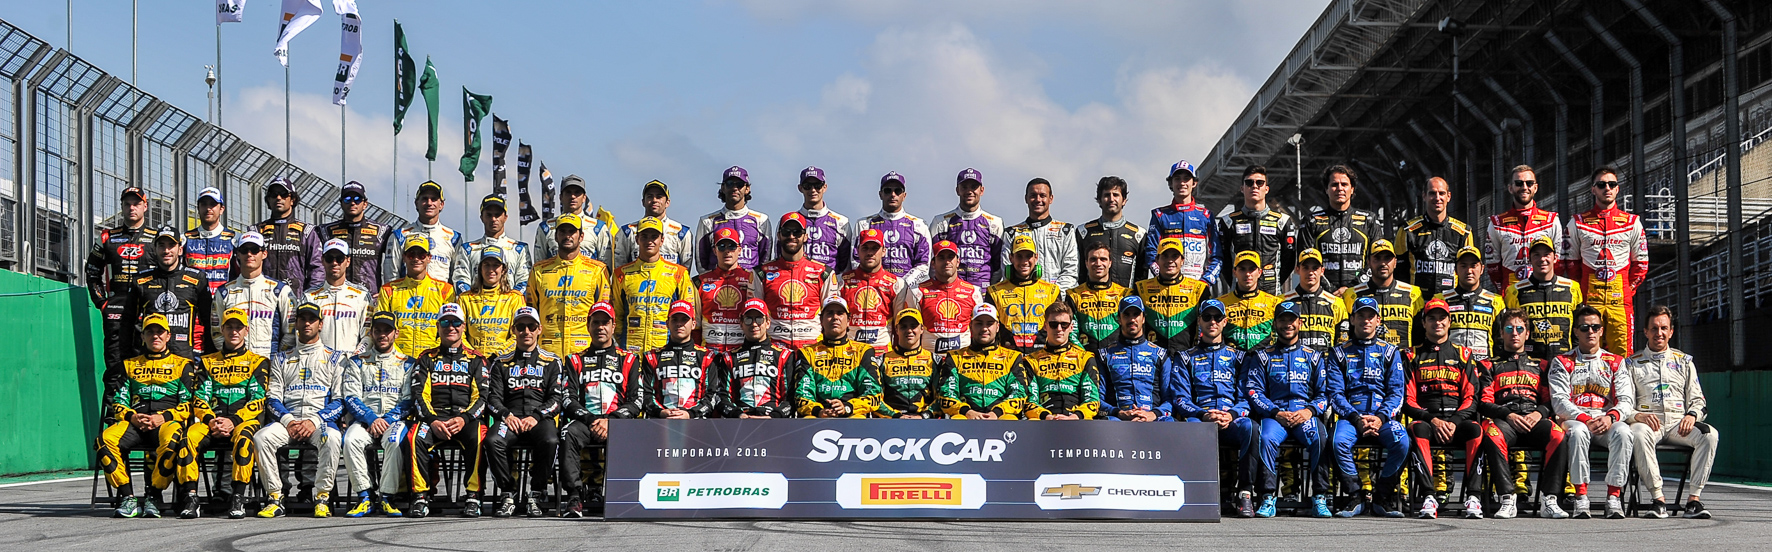 Stock Car 2018 _ 1ª etapa - Interlagos